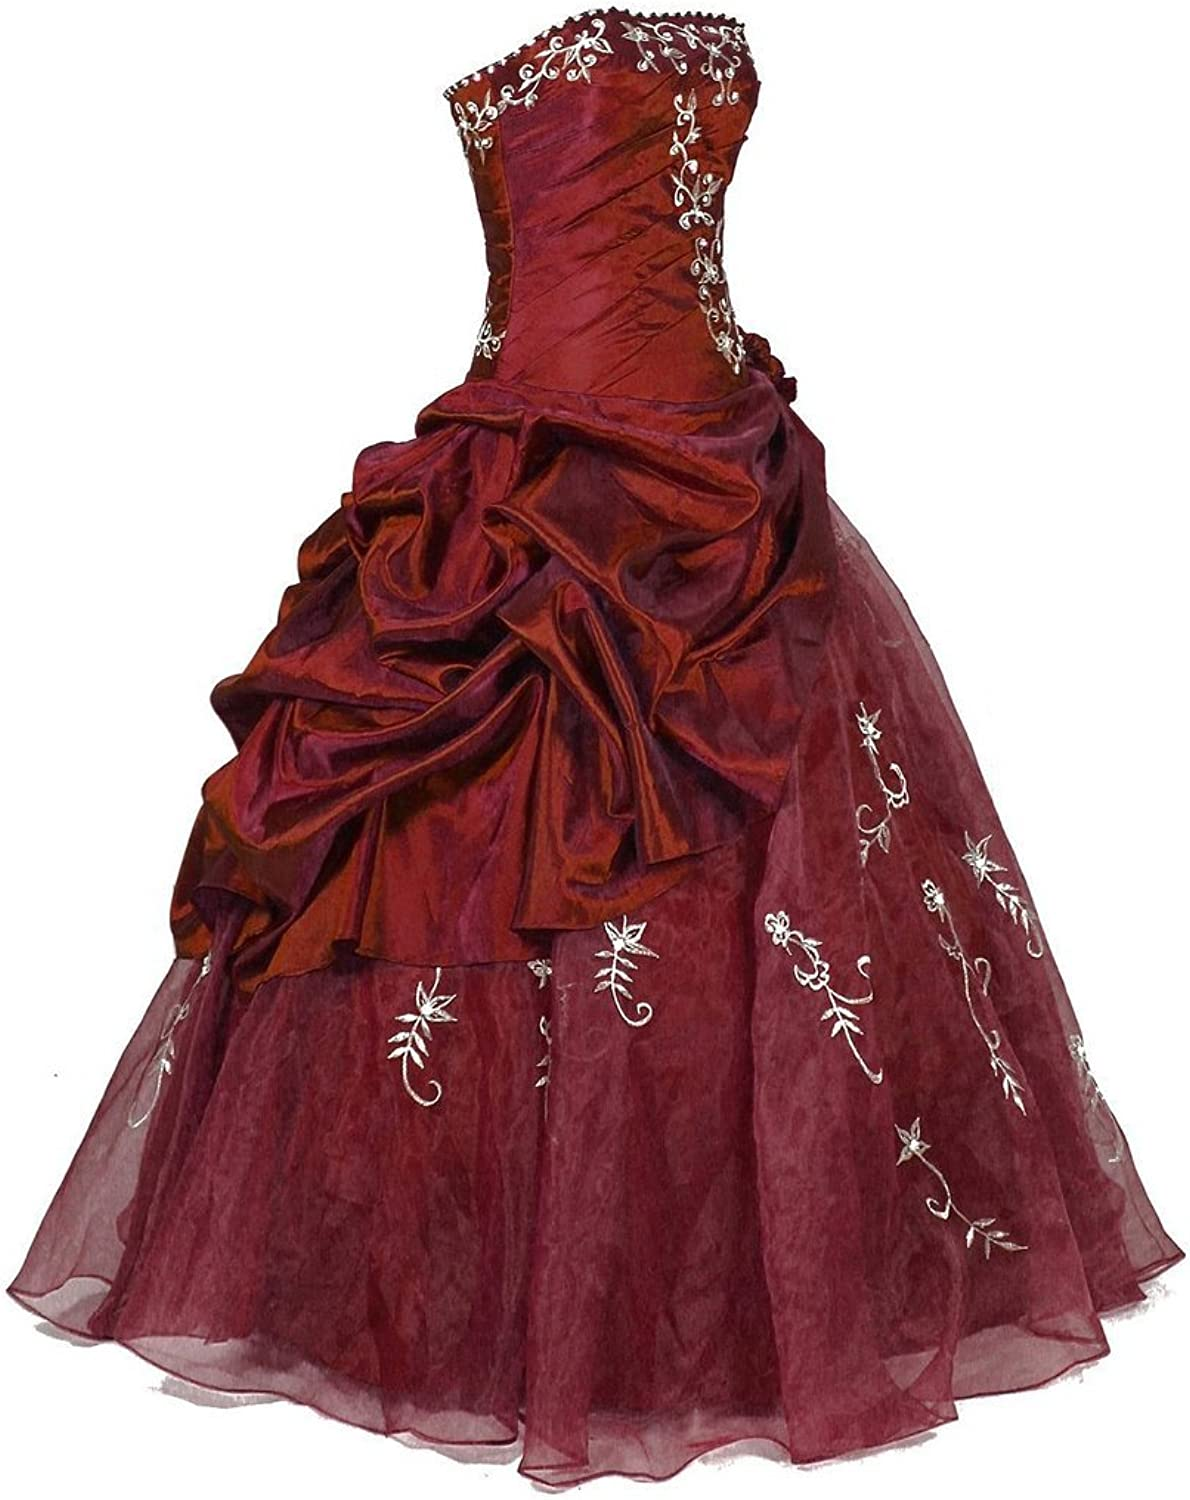 HSDJ Women's Ruffle with Embroidery Tulle Floor Length Quinceanera Dresses 0 US Burgundy